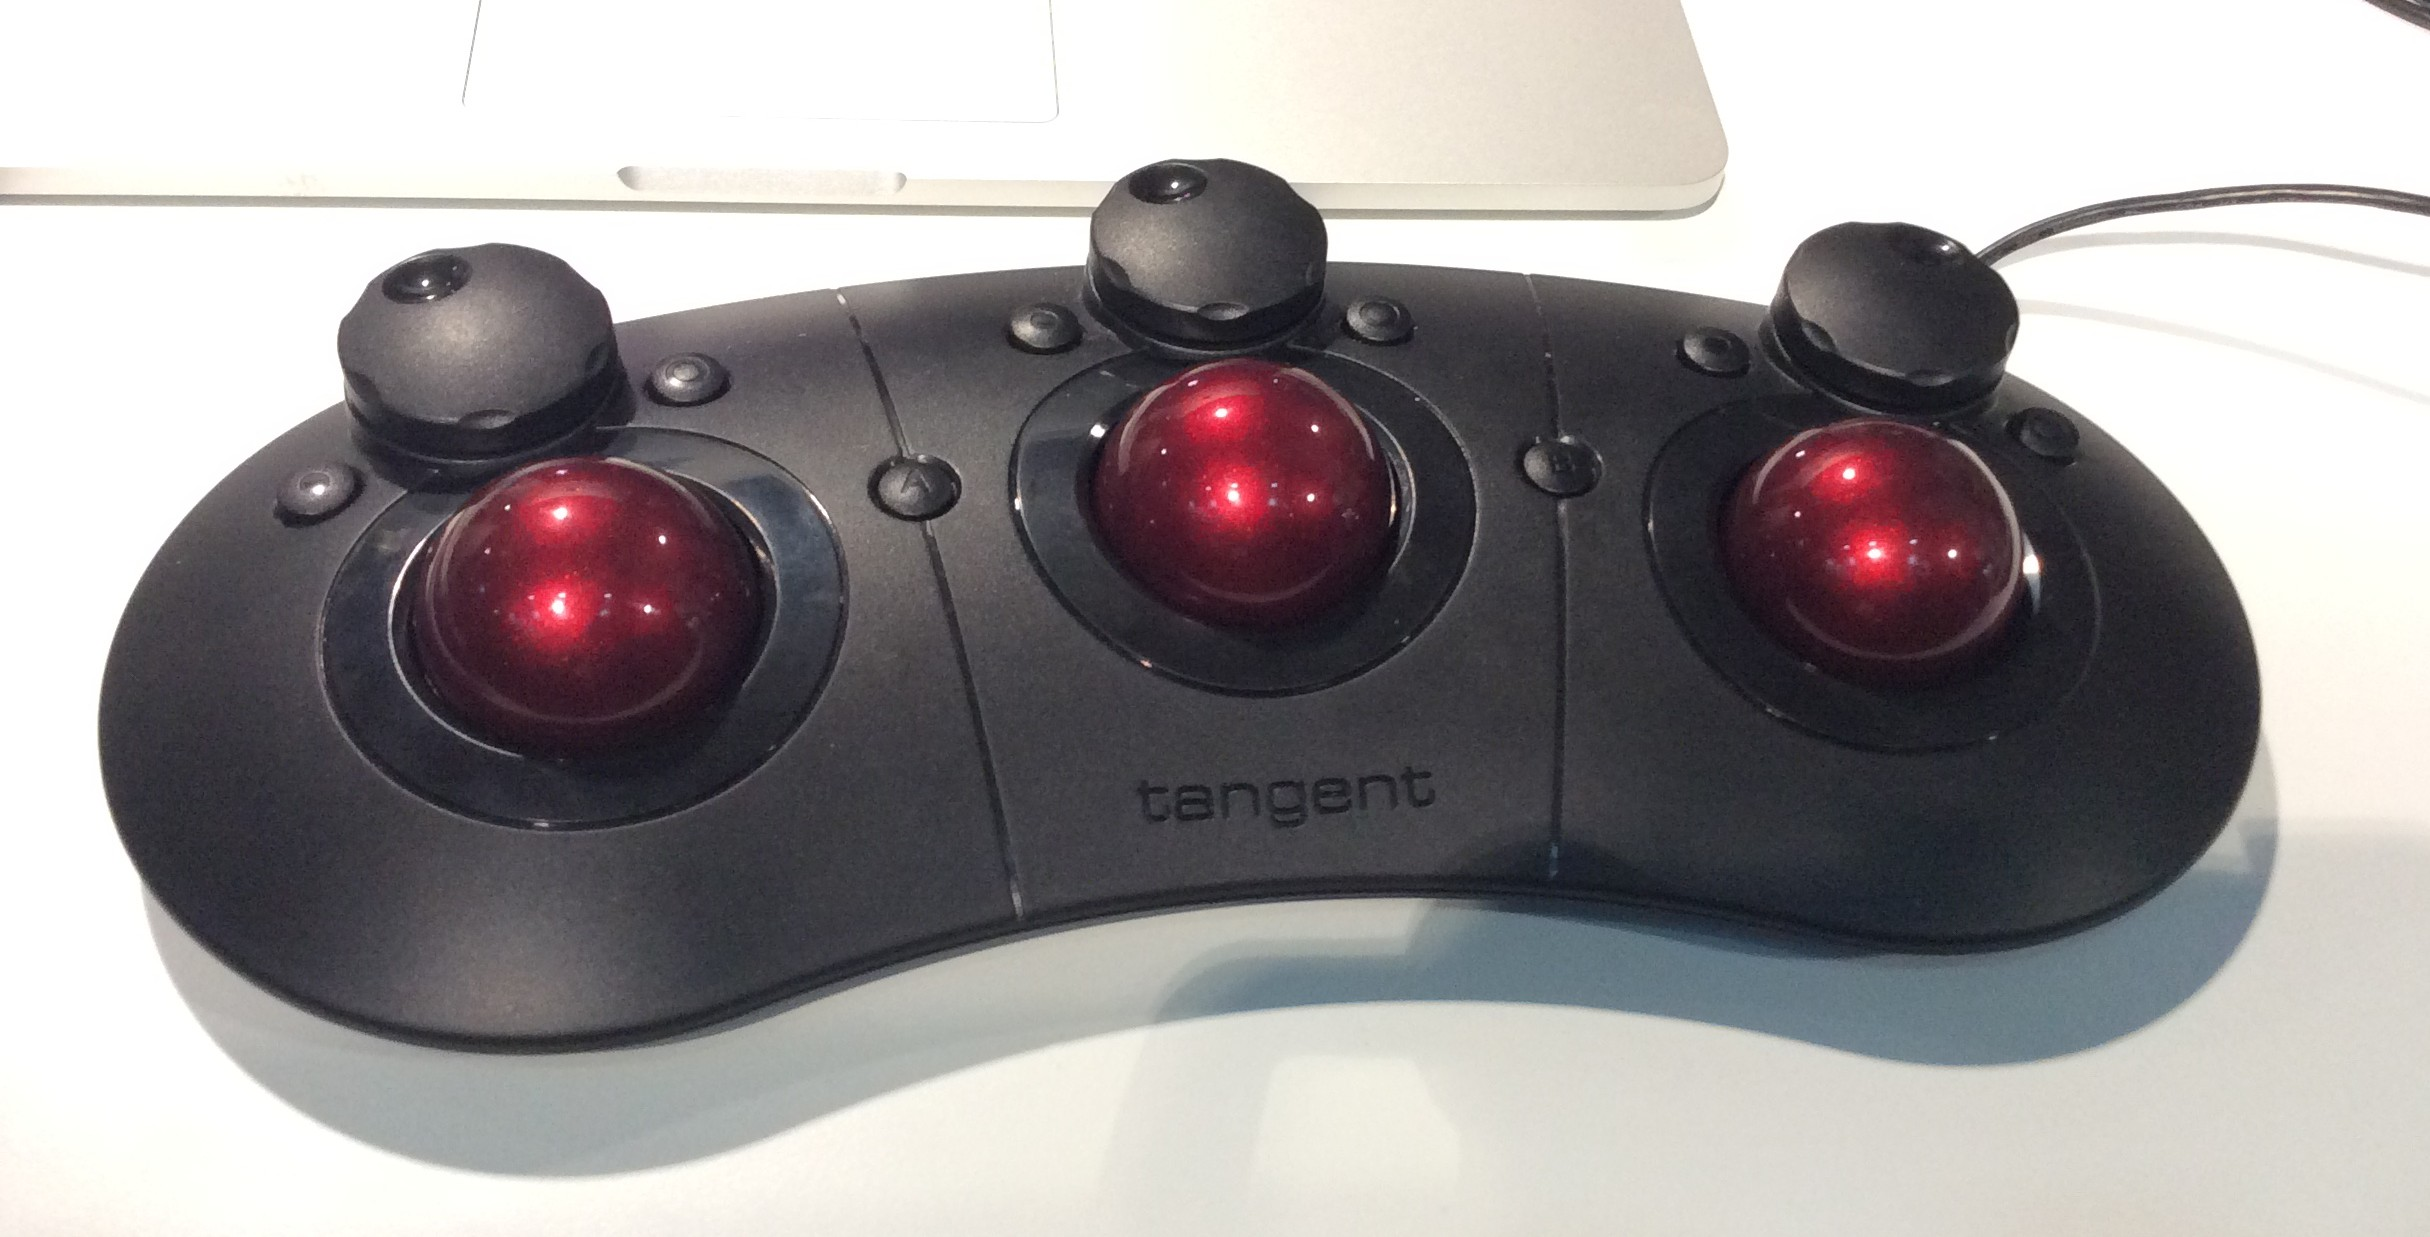 NAB 2016 - All About (and In Depth) With the Tangent Ripple 2